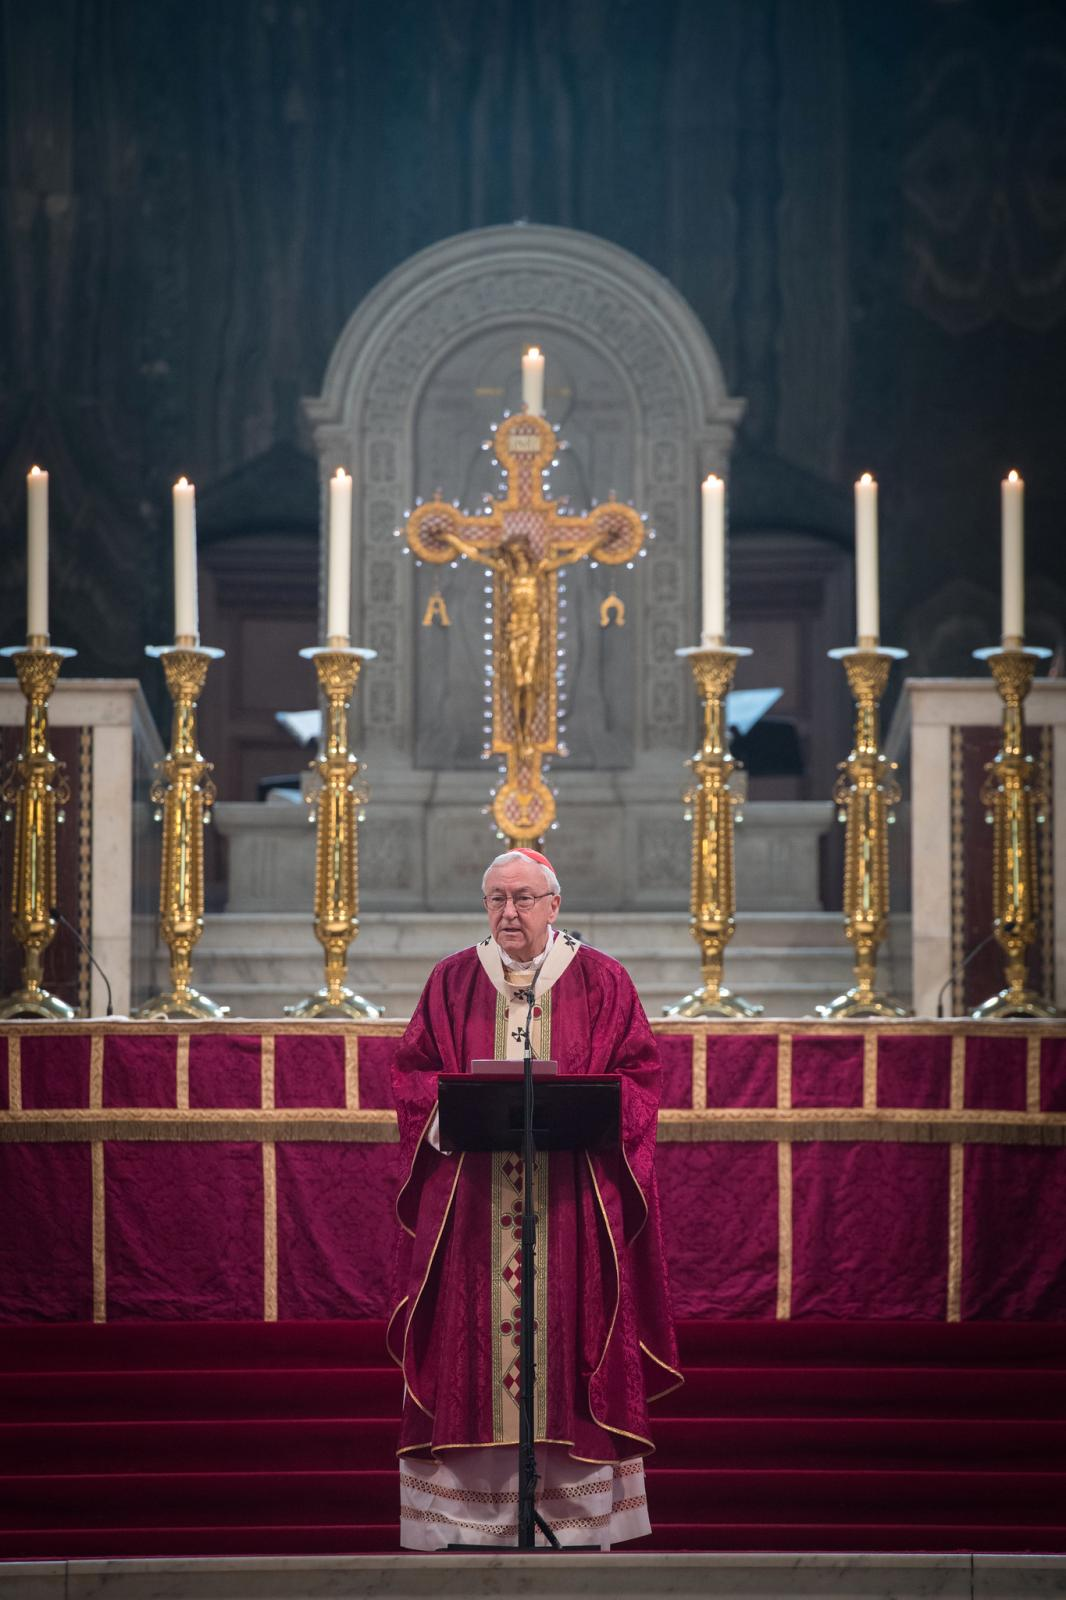 Cardinal's homily at Requiem Mass for Prince Philip